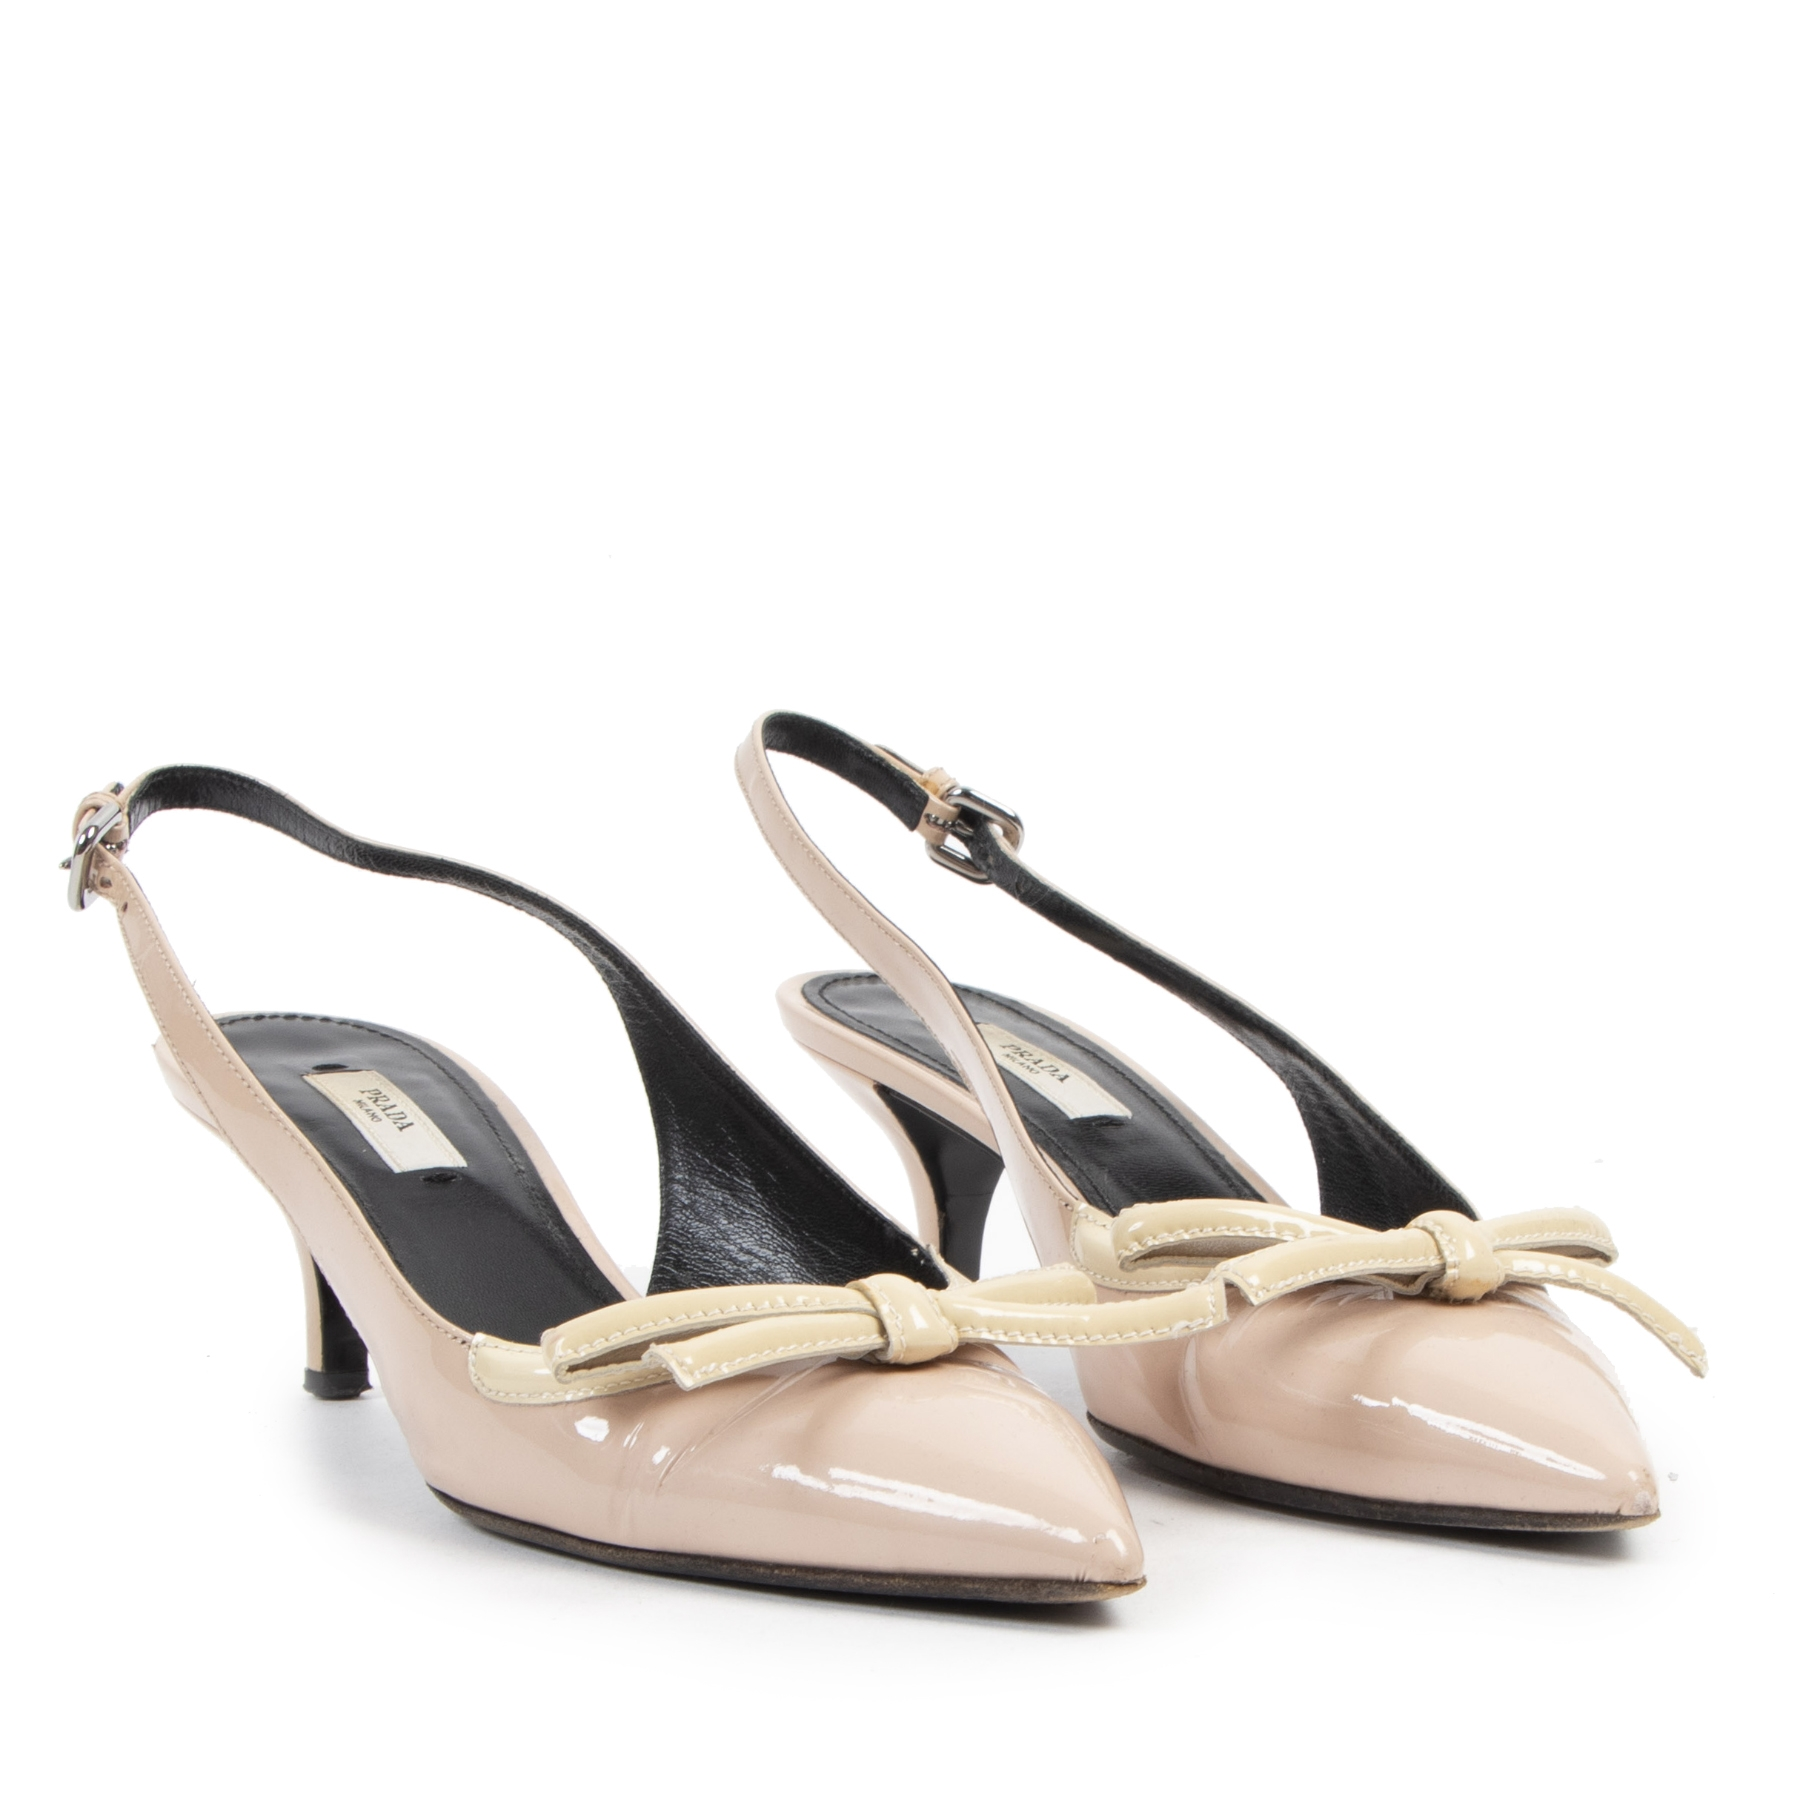 Authentic secondhand Prada Nude Leather Strap Kitten Heels - Size 37,5 designer bags fashion luxury vintage webshop